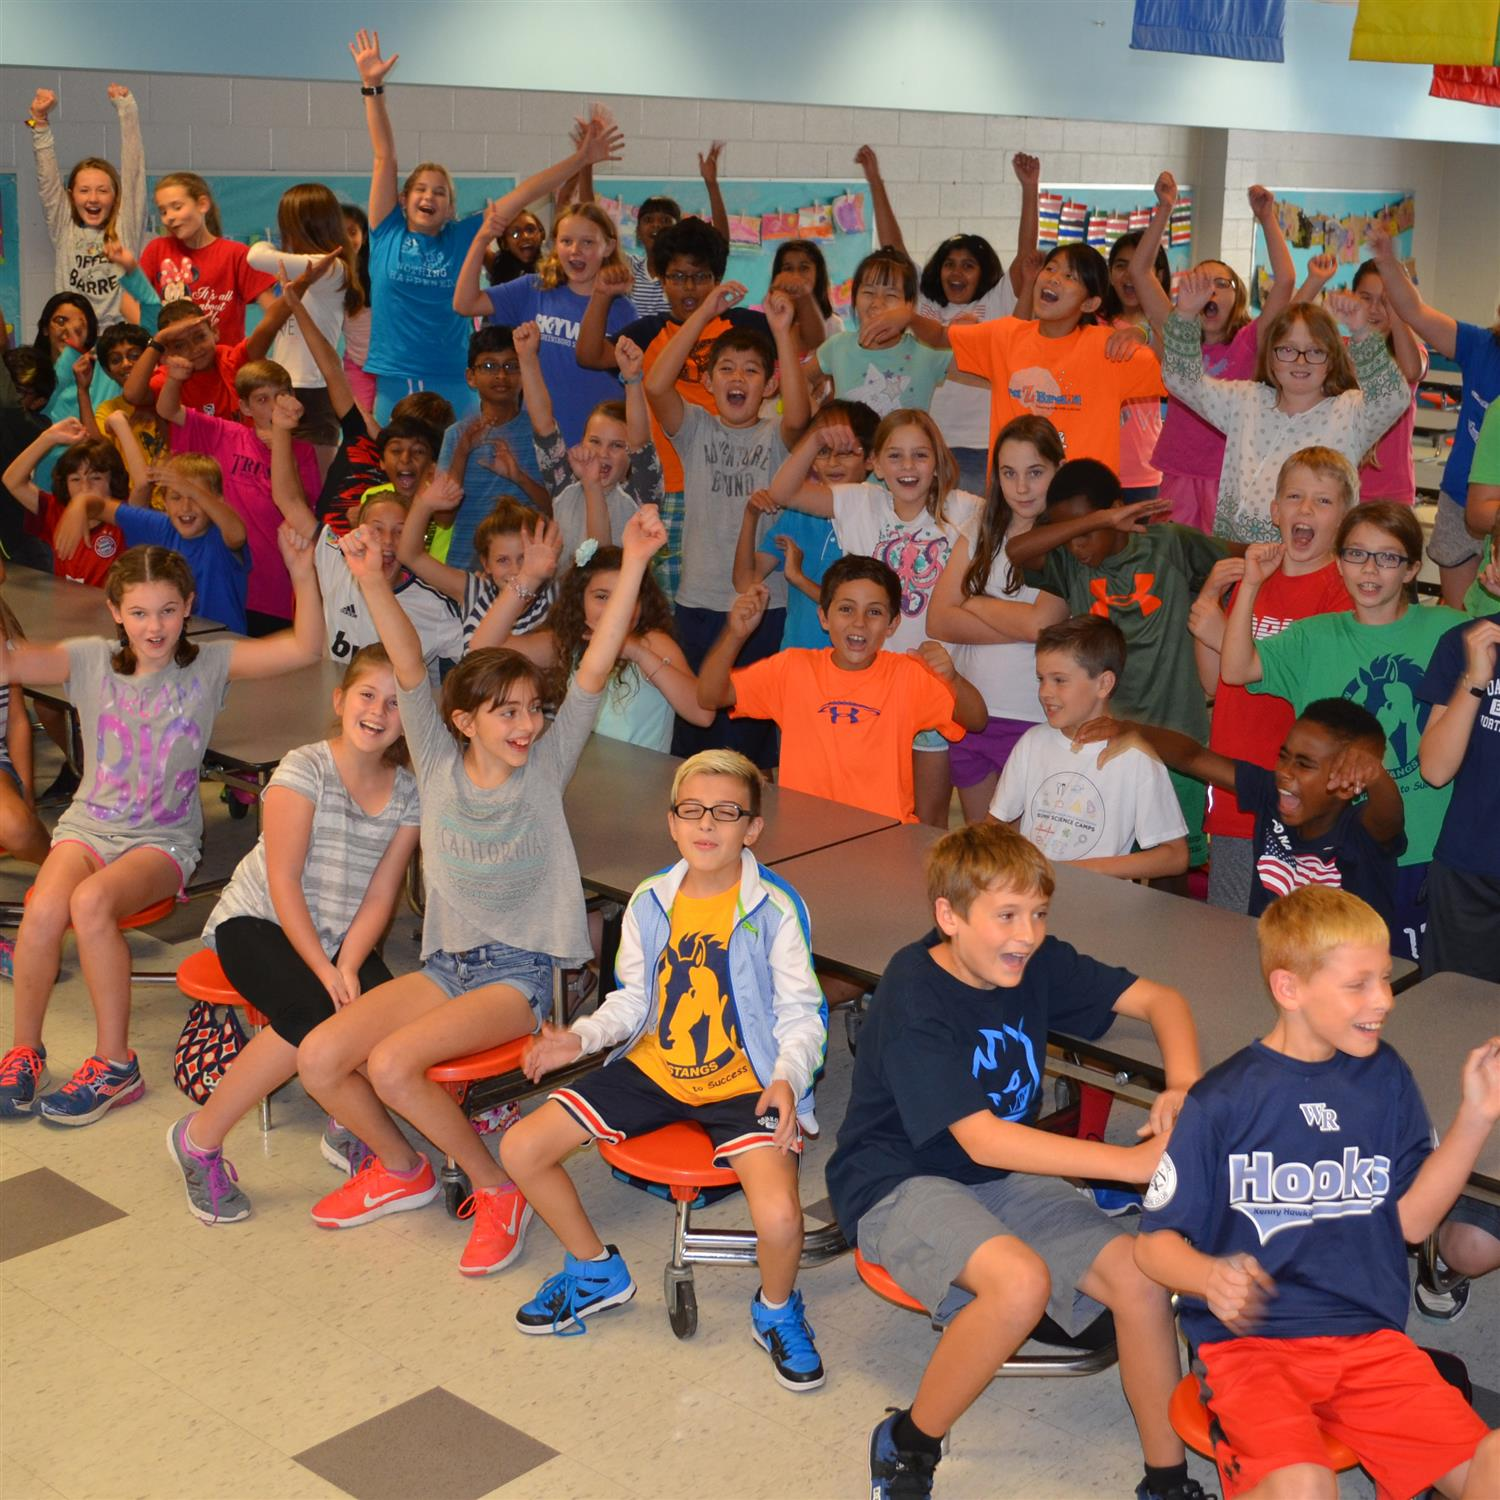 Morrisville Elementary students celebrate being named 2016 National Blue Ribbon School